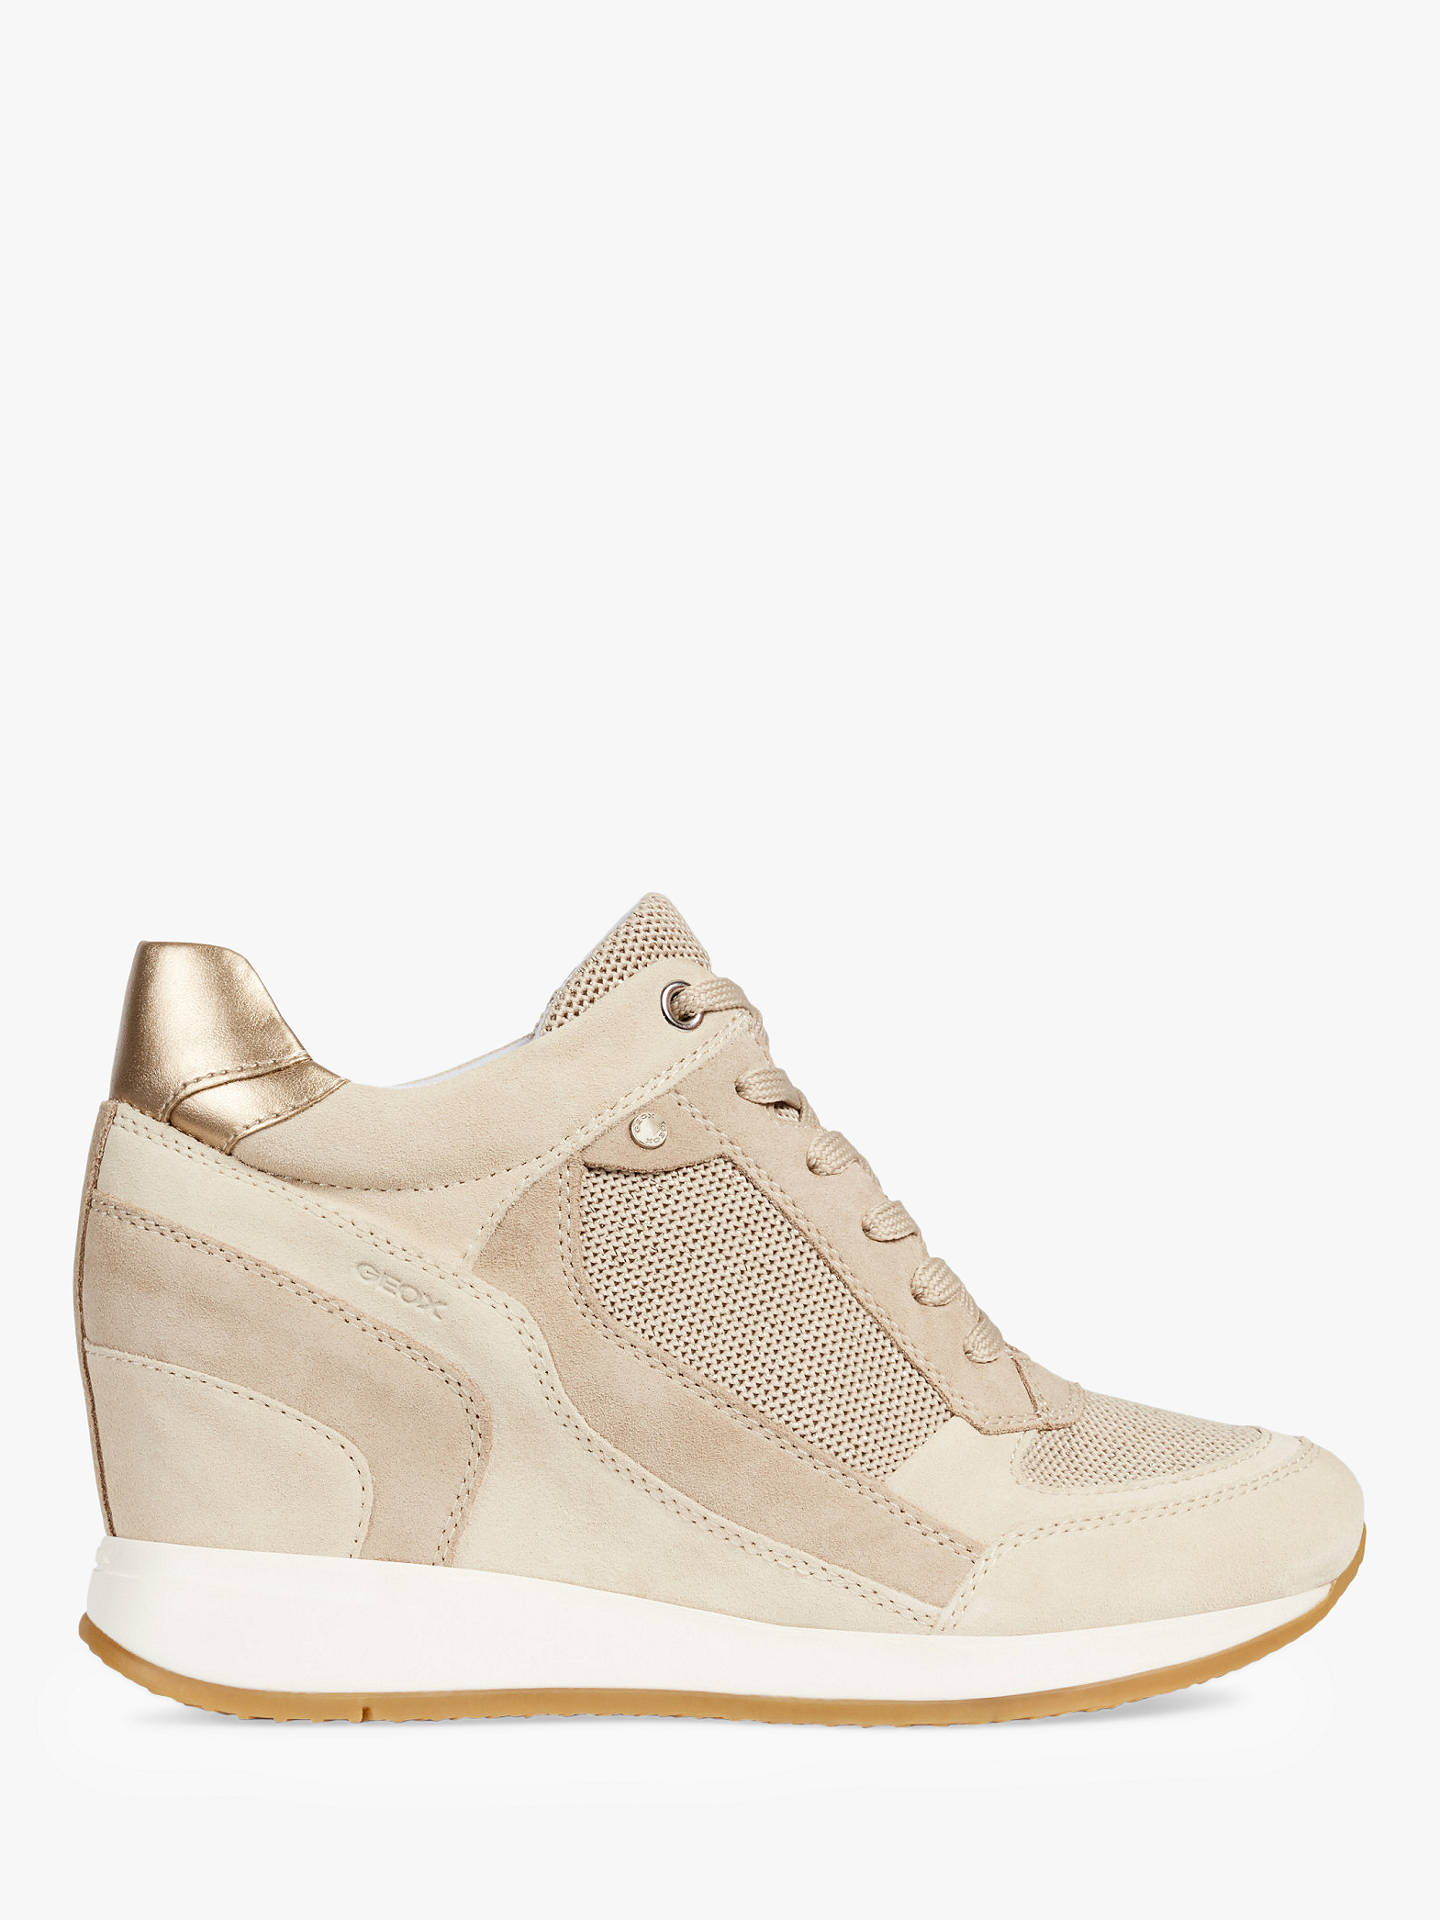 d6df4f45046 Buy Geox Women's Nydame Wedge Heel Trainers, Cream Leather, 3 Online at  johnlewis.